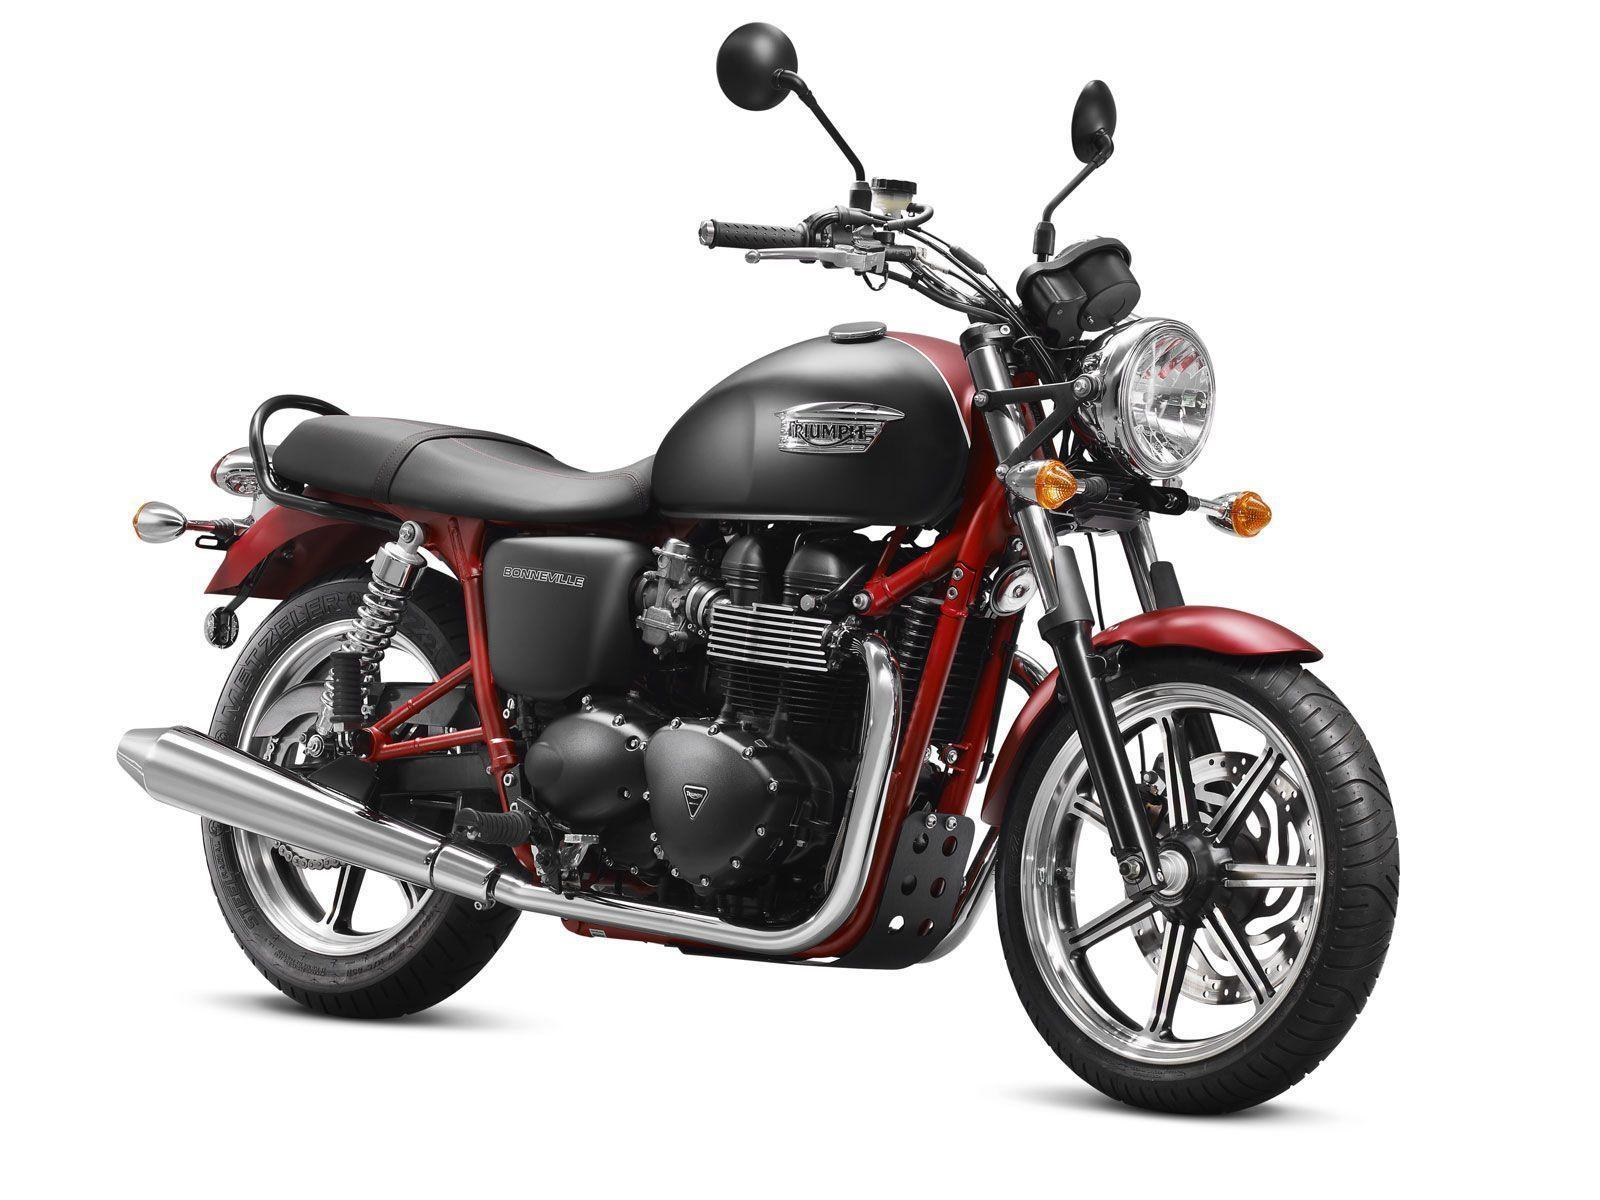 Triumph Motorcycle Wallpapers Wallpaper Cave